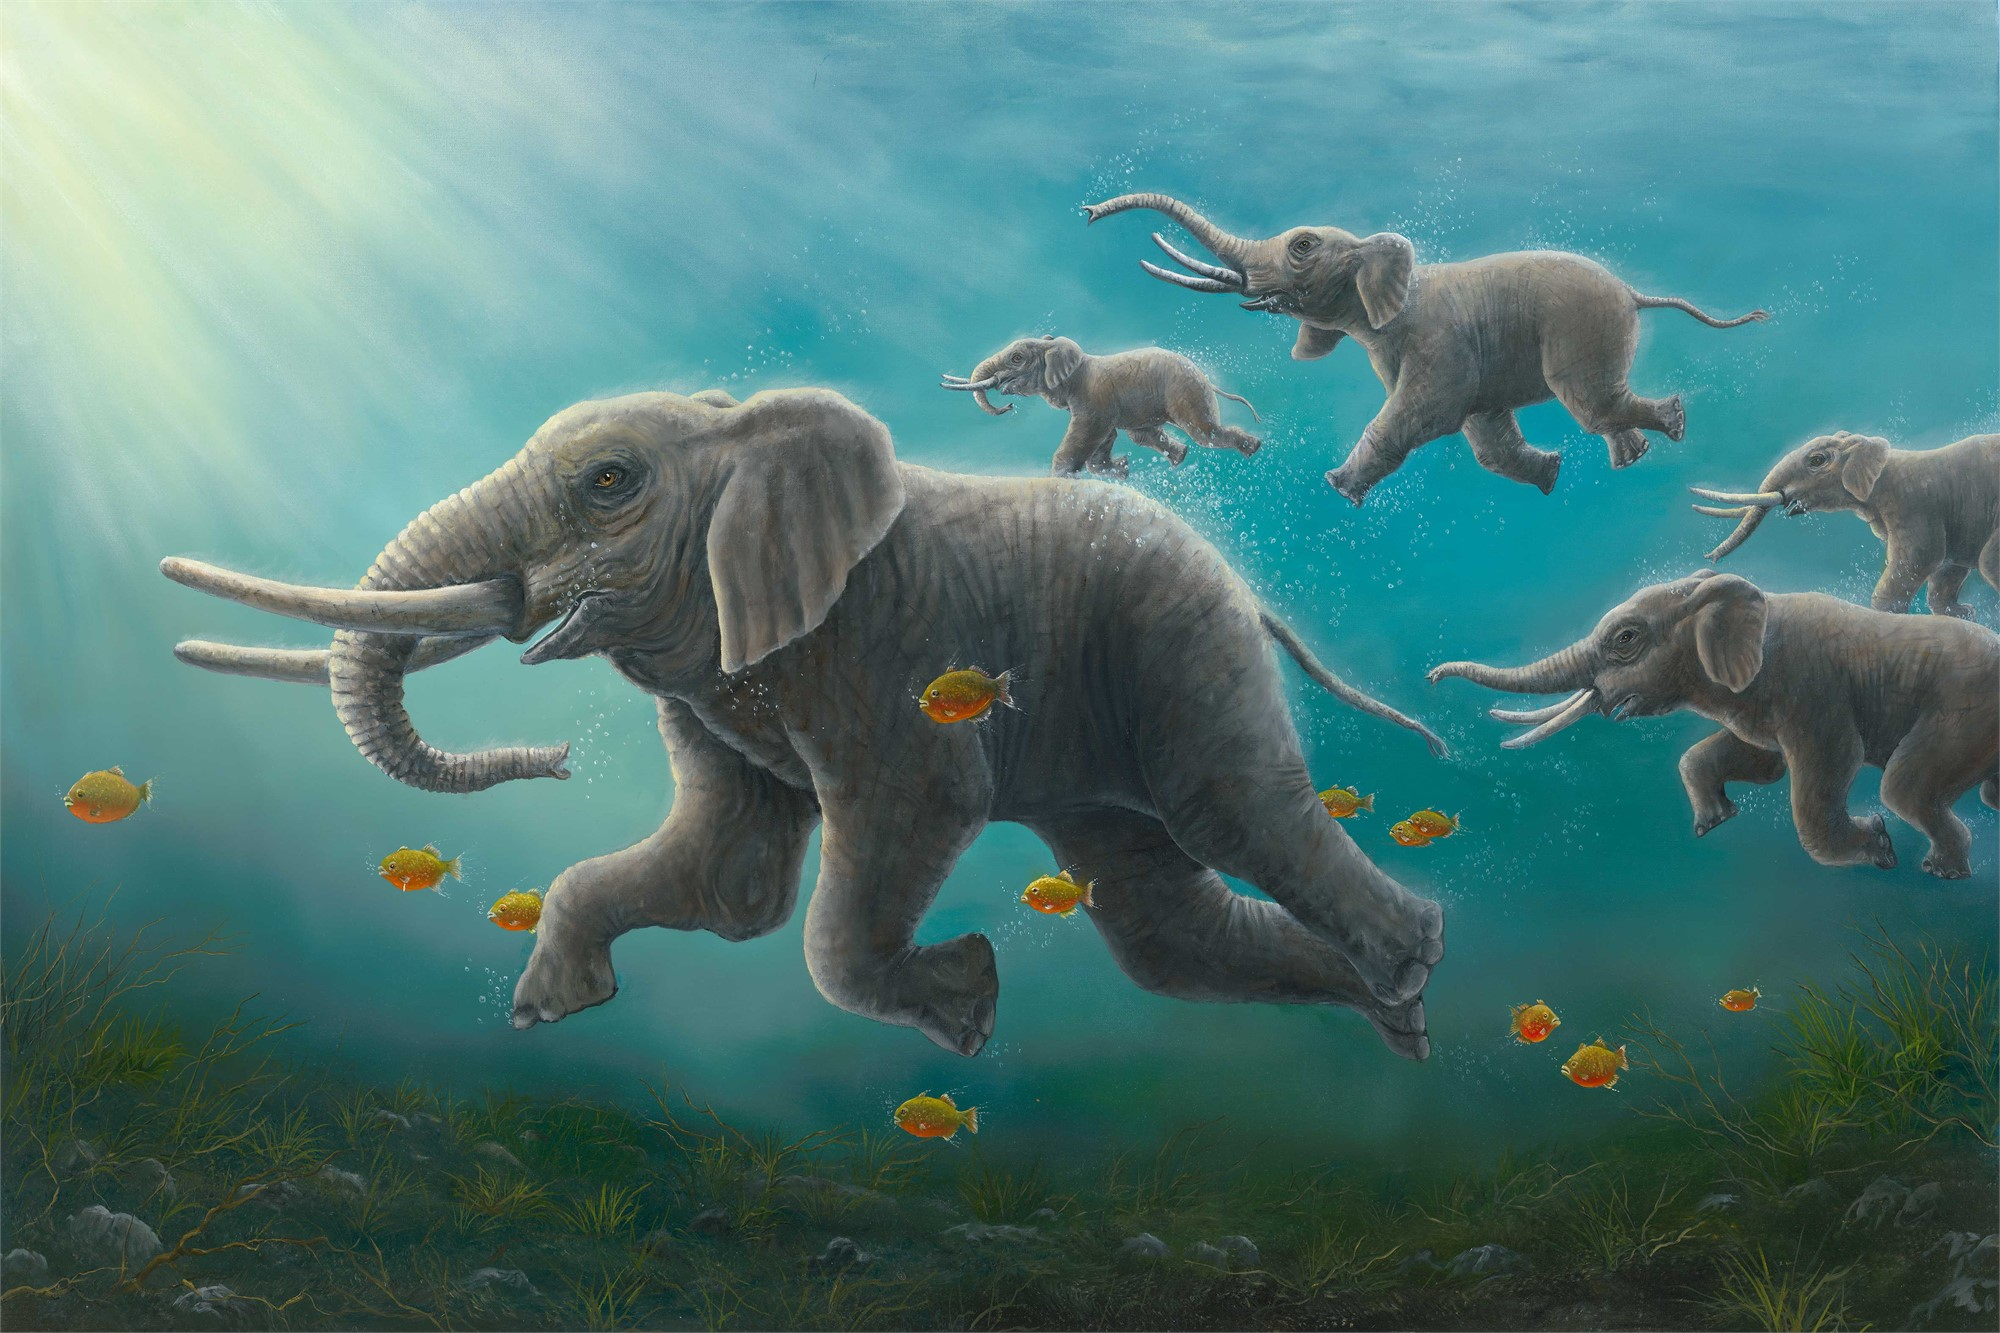 The Race by Robert Bissell